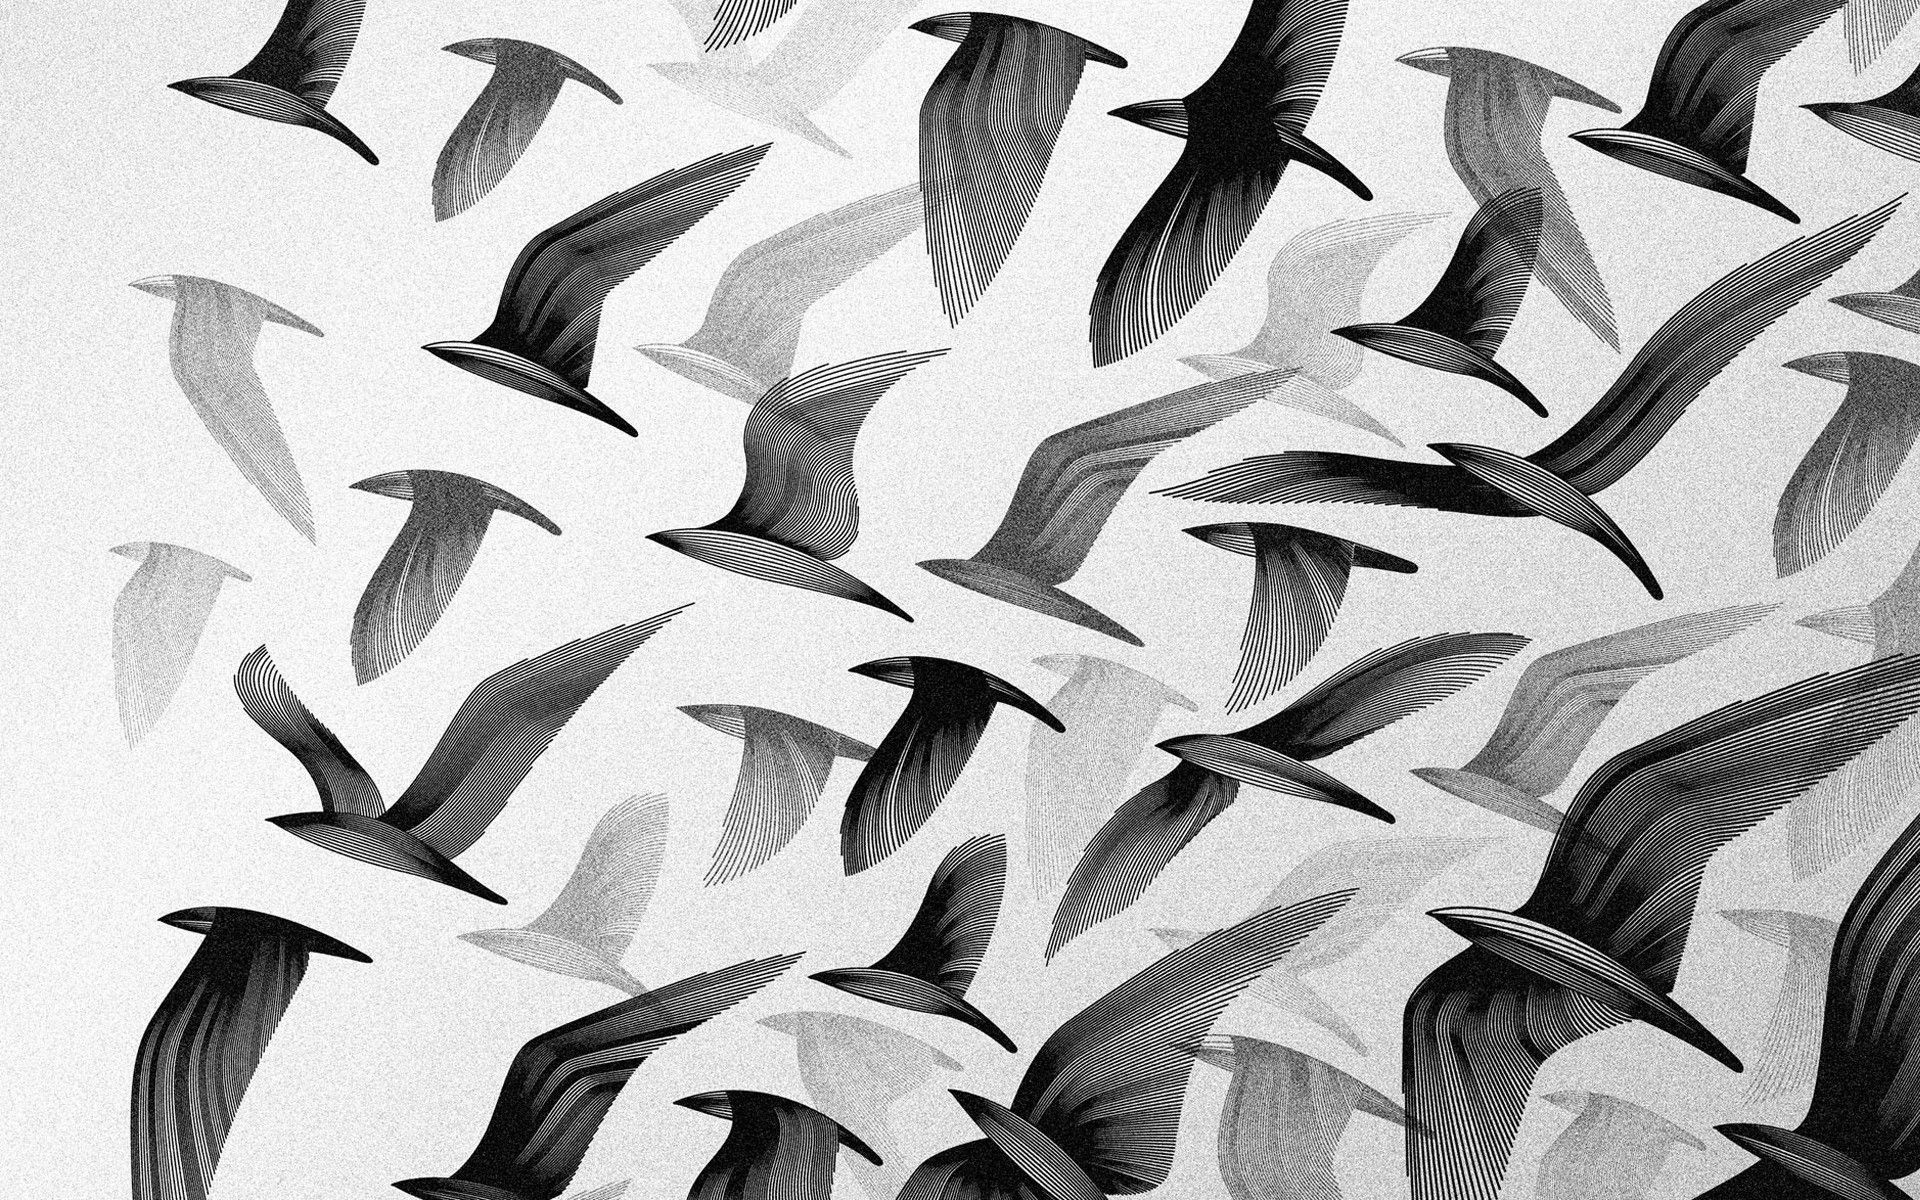 Cool Wallpaper High Resolution Black And White - black-and-white-images-of-birds-1-high-resolution-wallpaper  Gallery_153958.jpg